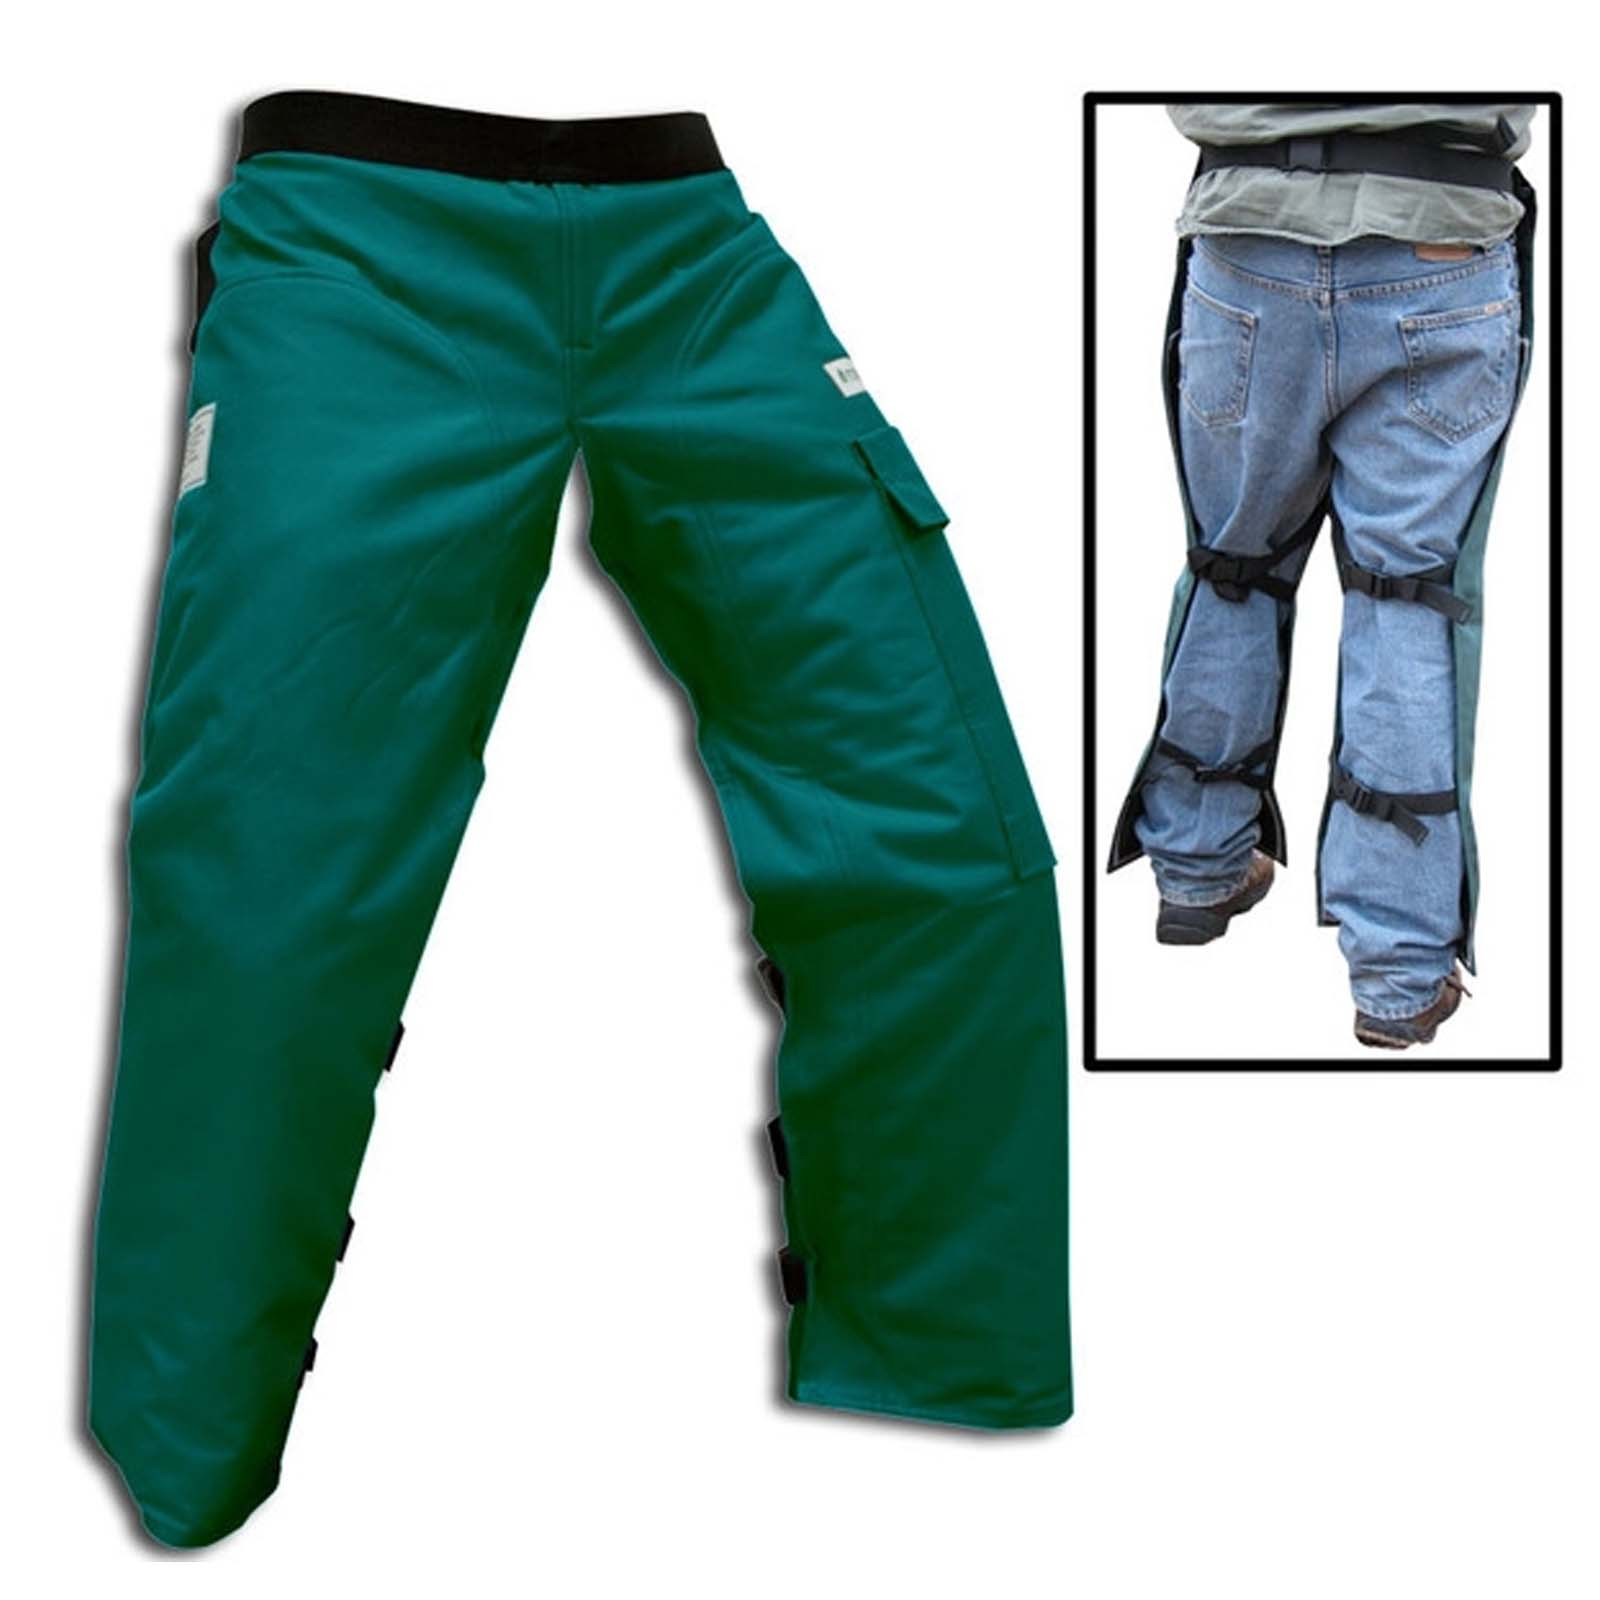 Chainsaw Safety Chaps - Protective Pants New Large 38""